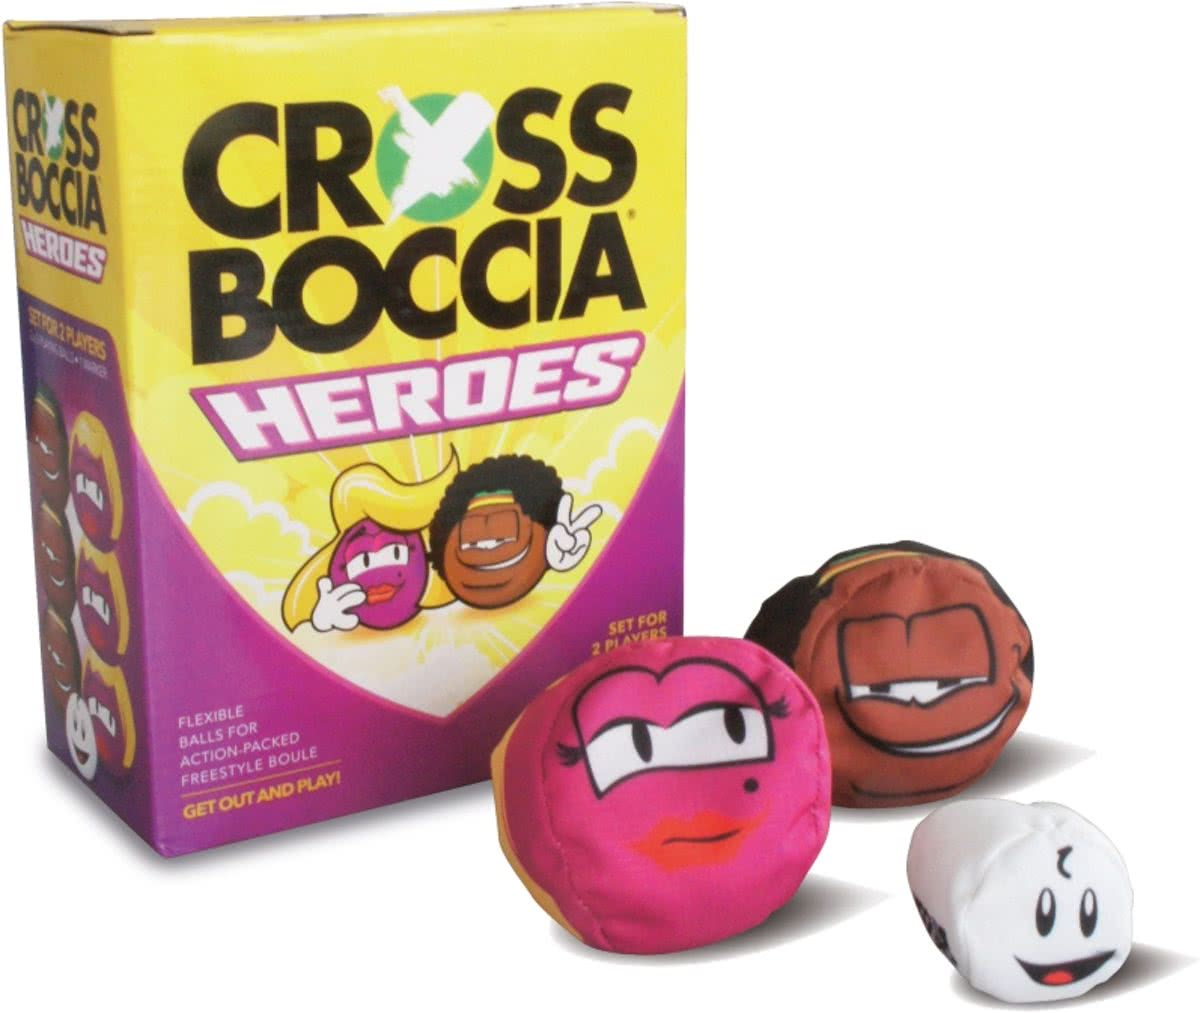 Fun Sports - Crossboccia Set voor 2 spelers - Blond and Muffin